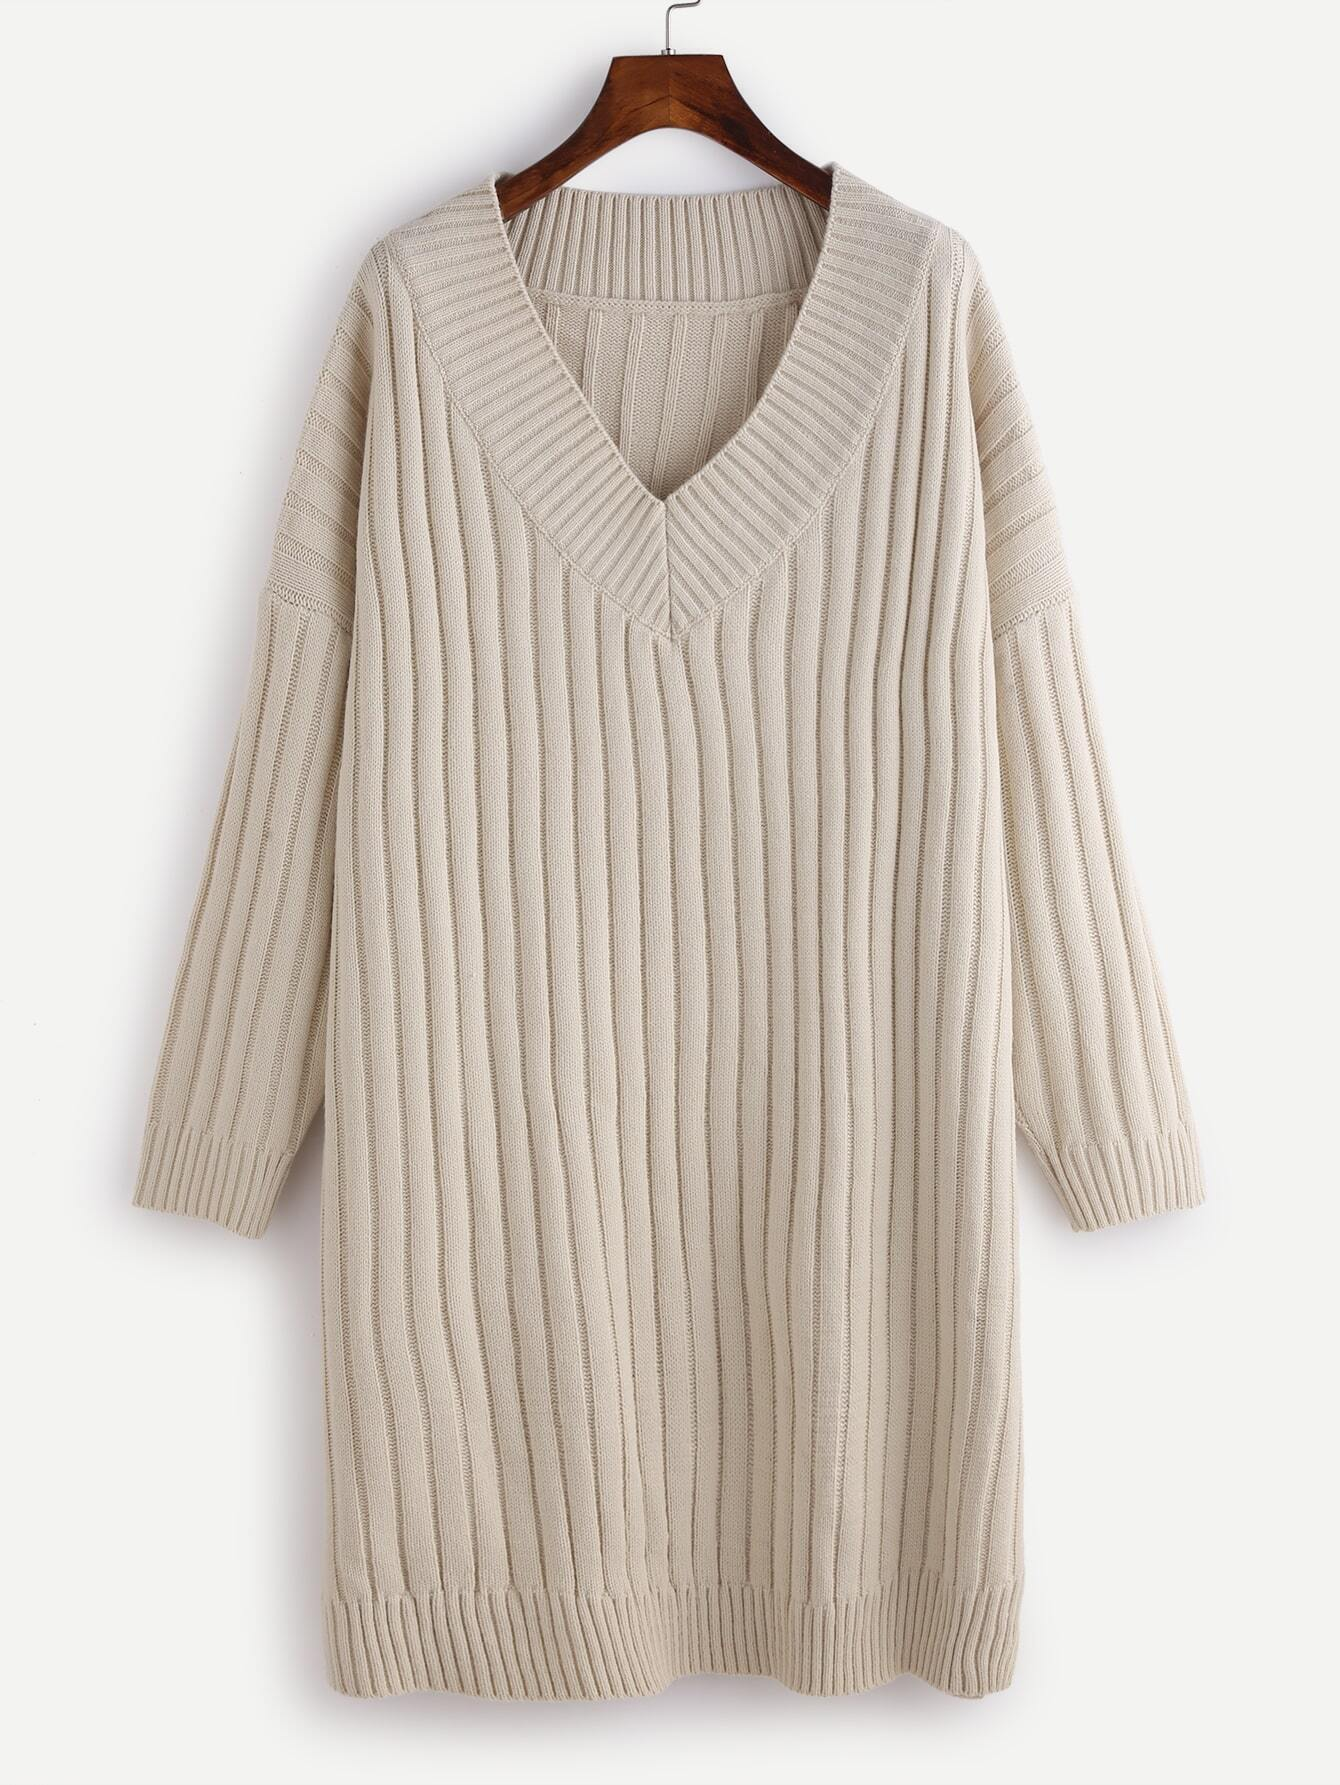 Apricot V Neck Drop Shoulder Ribbed Knit Sweater Dress